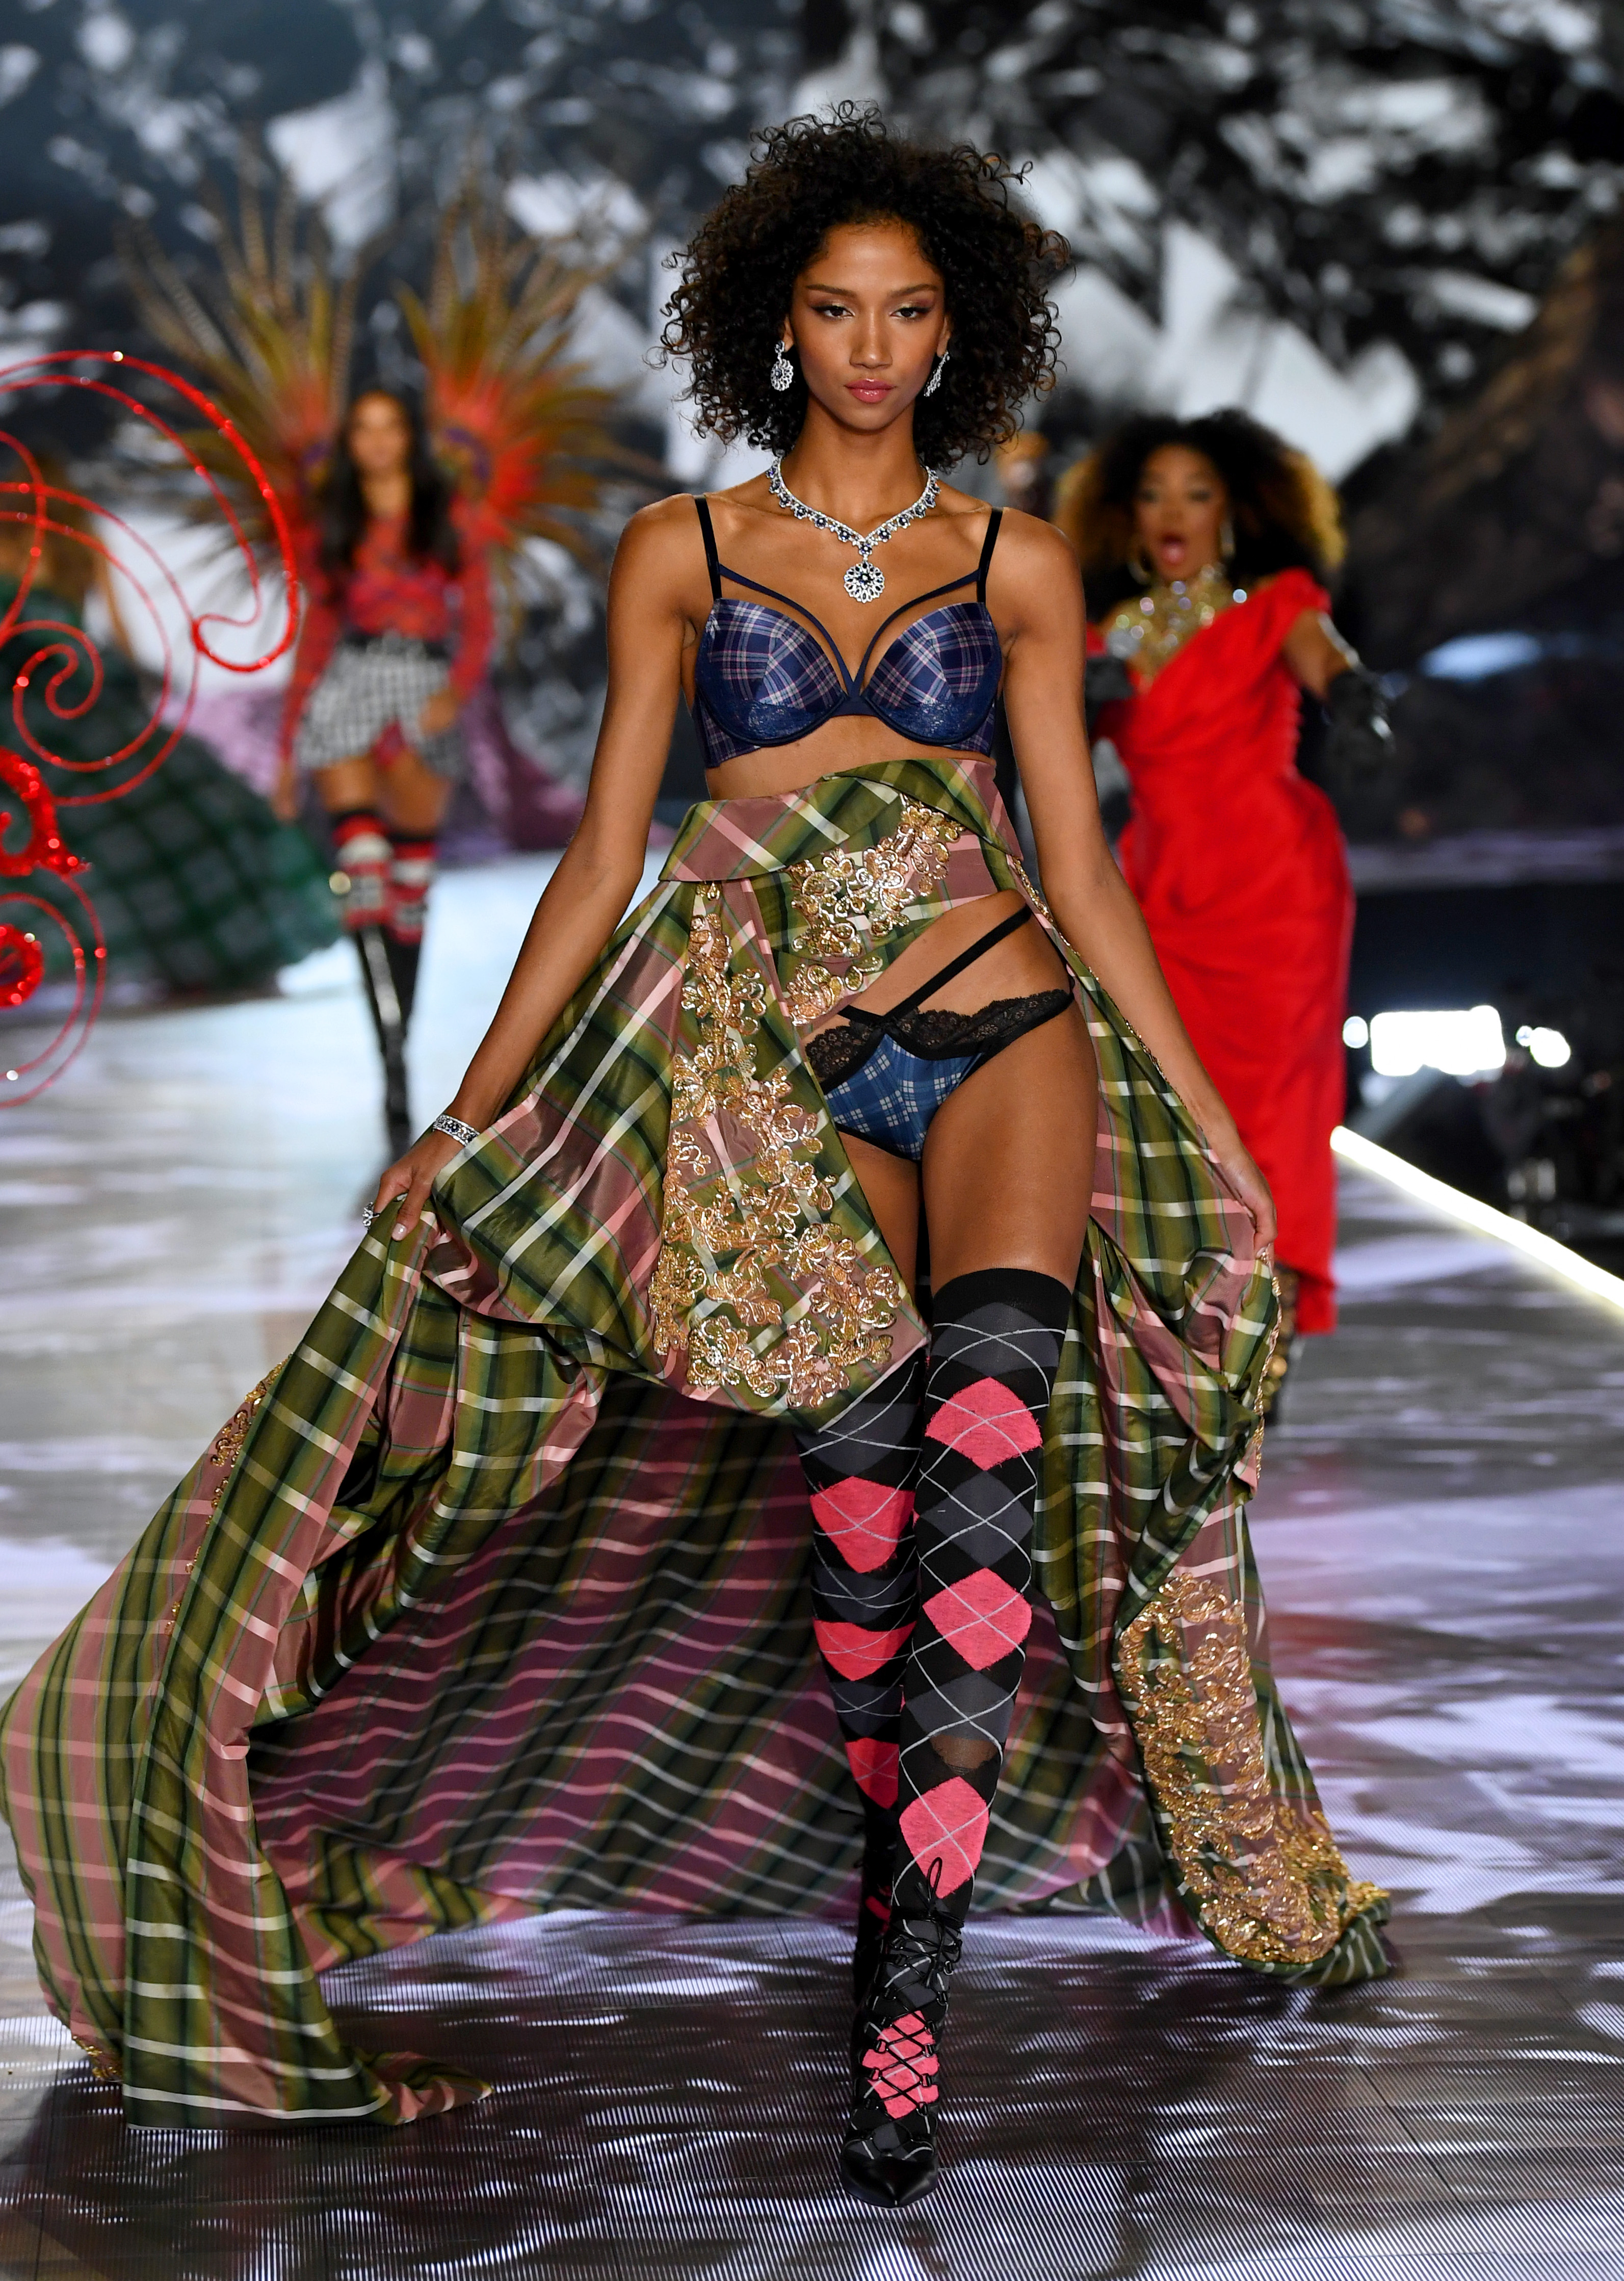 Aiden Curtiss walks the runway during the 2018 Victoria's Secret Fashion Show at Pier 94 on November 8, 2018, in New York City. (Getty Images)